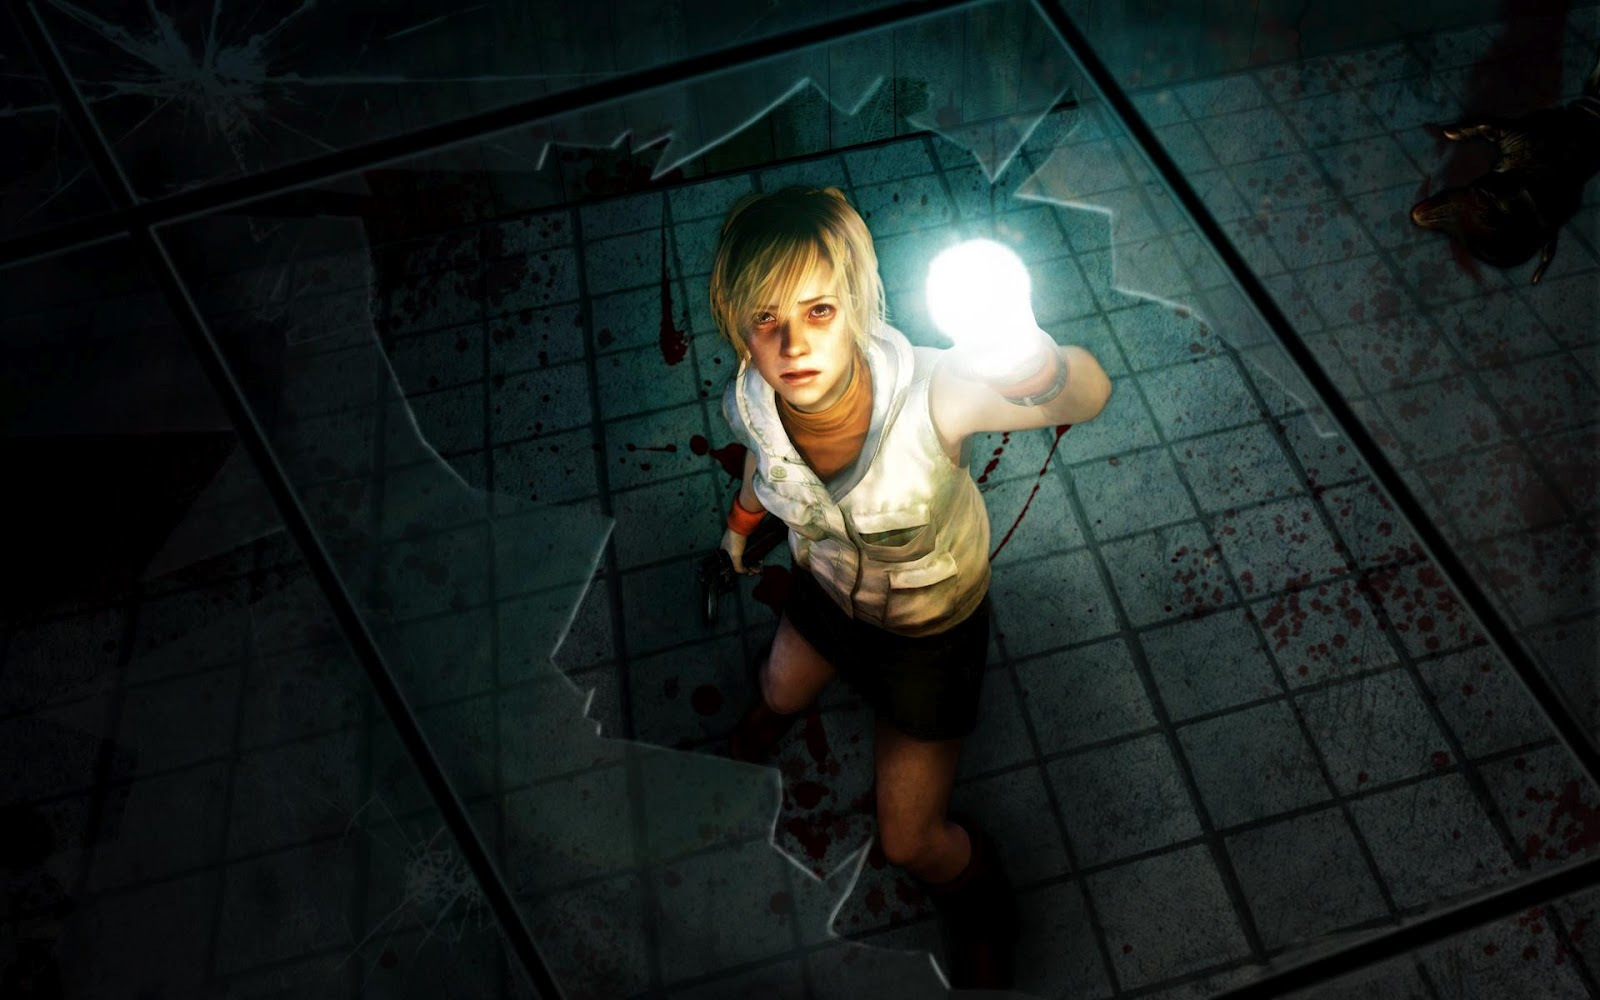 Silent Hill 3 Wallpaper: Free High-Definition Wallpapers: Best Impressive Full HD